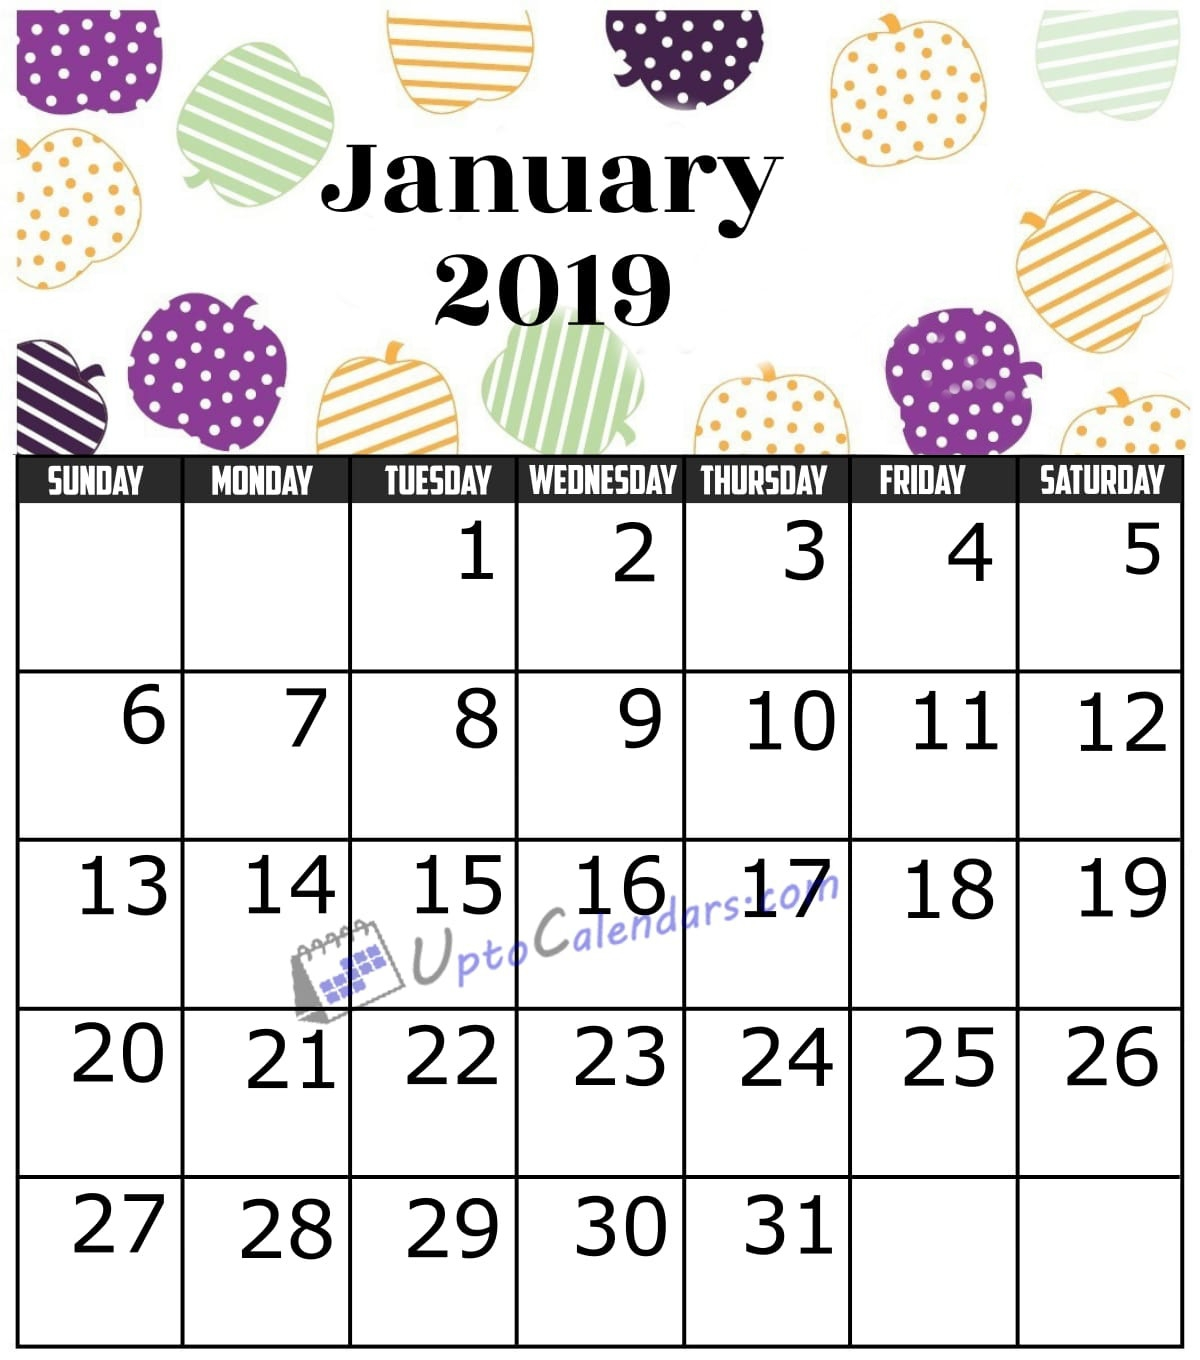 january 2019 calendar printable template with holidays pdf word::January 2019 Calendar Templates